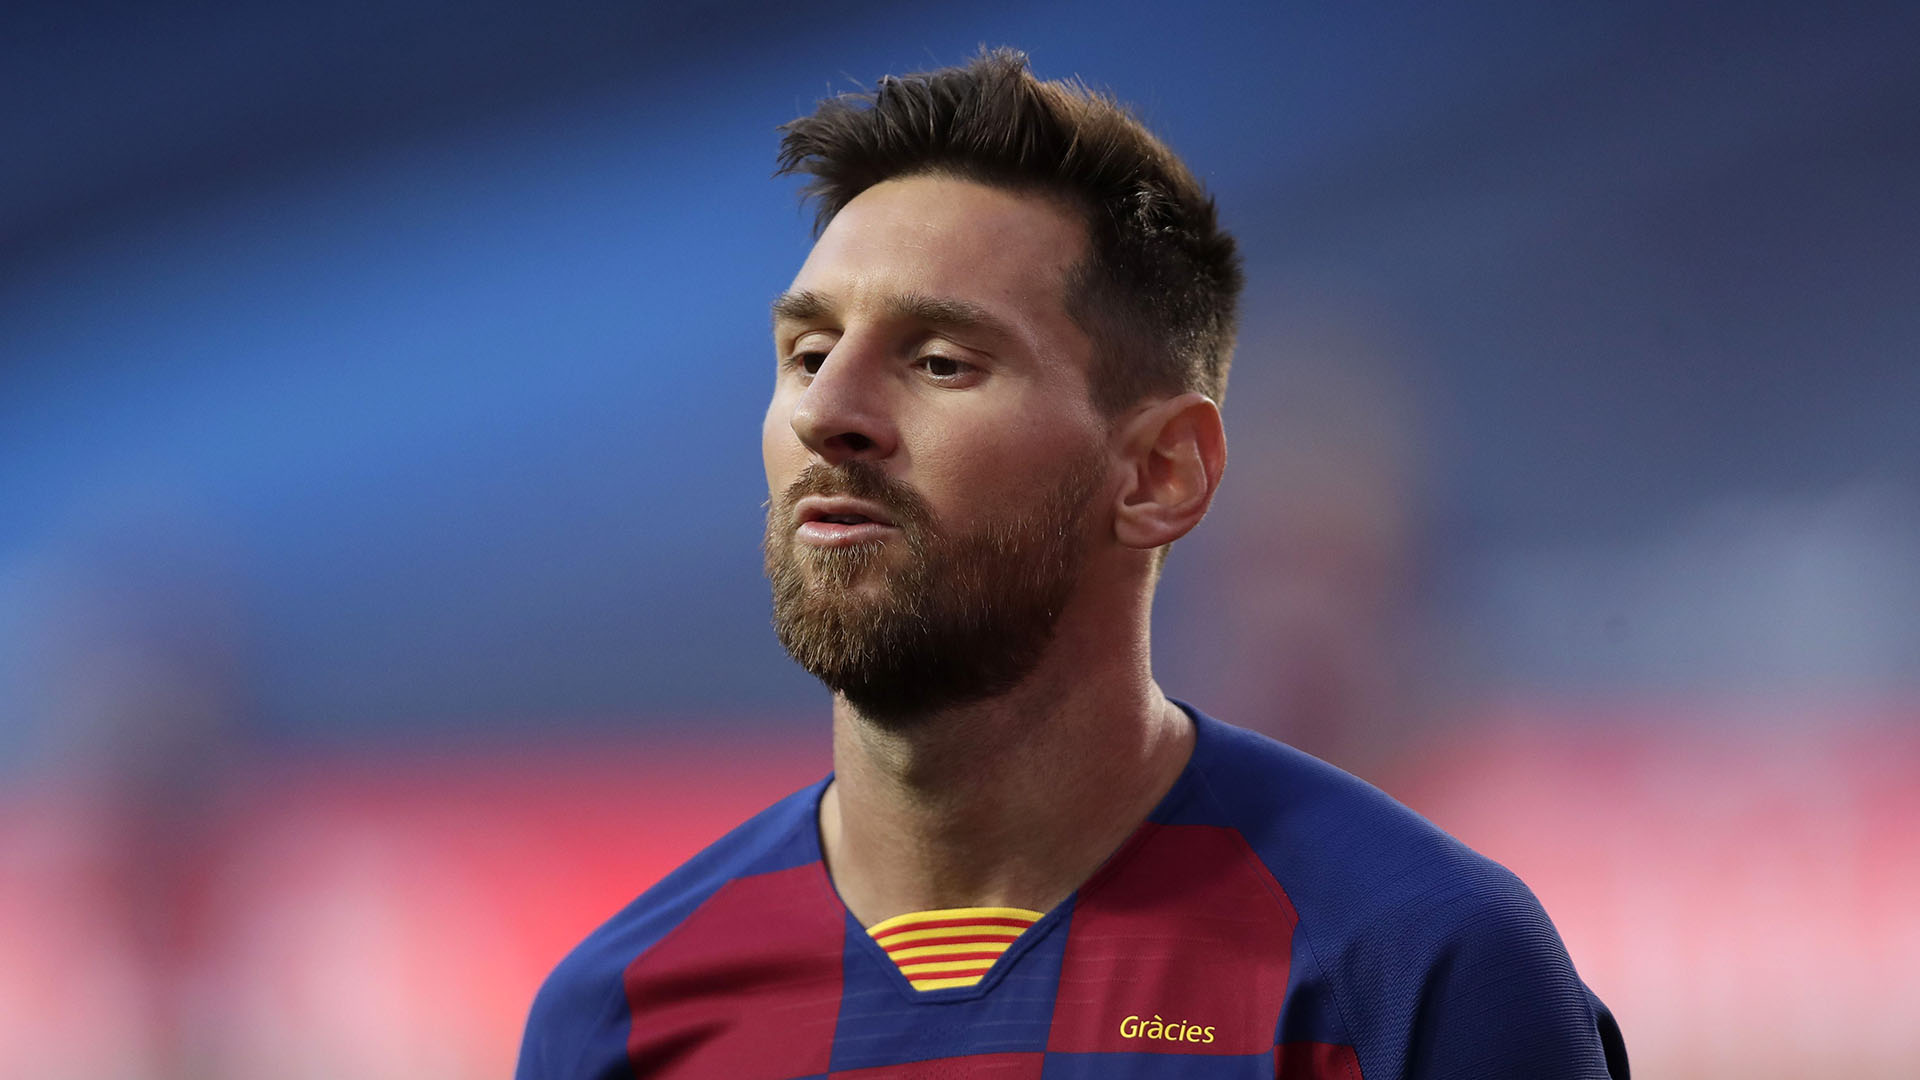 Messi breaks silence on Barcelona exit saga: 'The president did not keep his word'